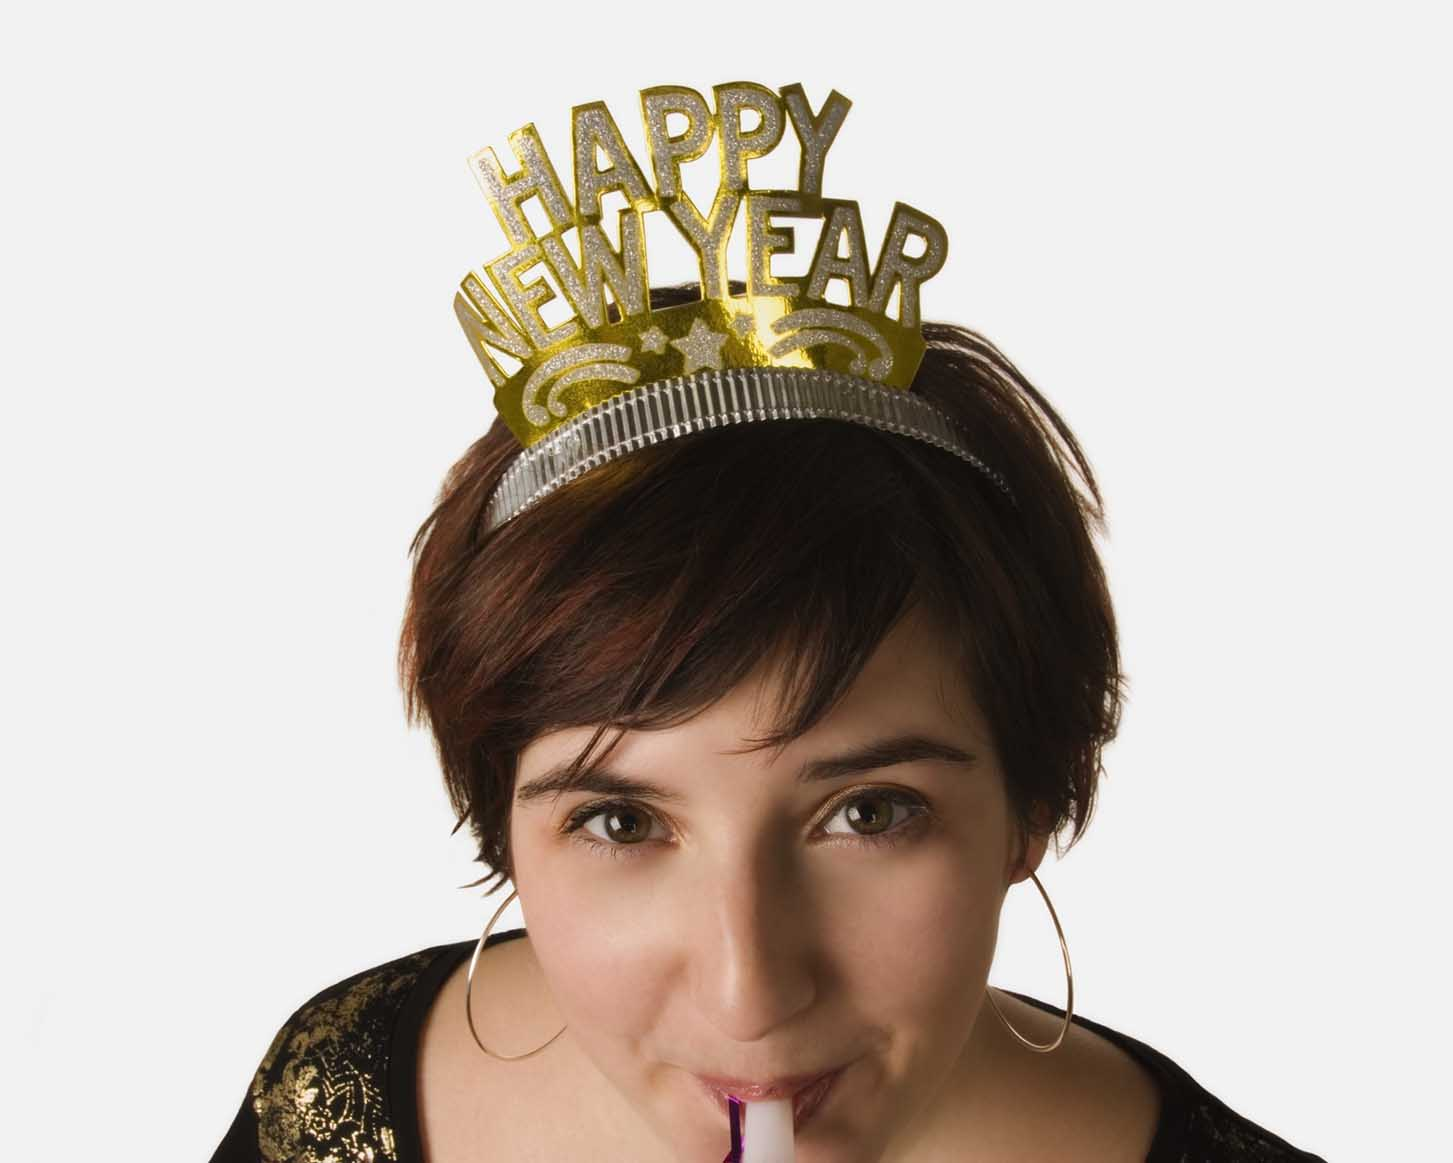 woman celebrating new year by being organized